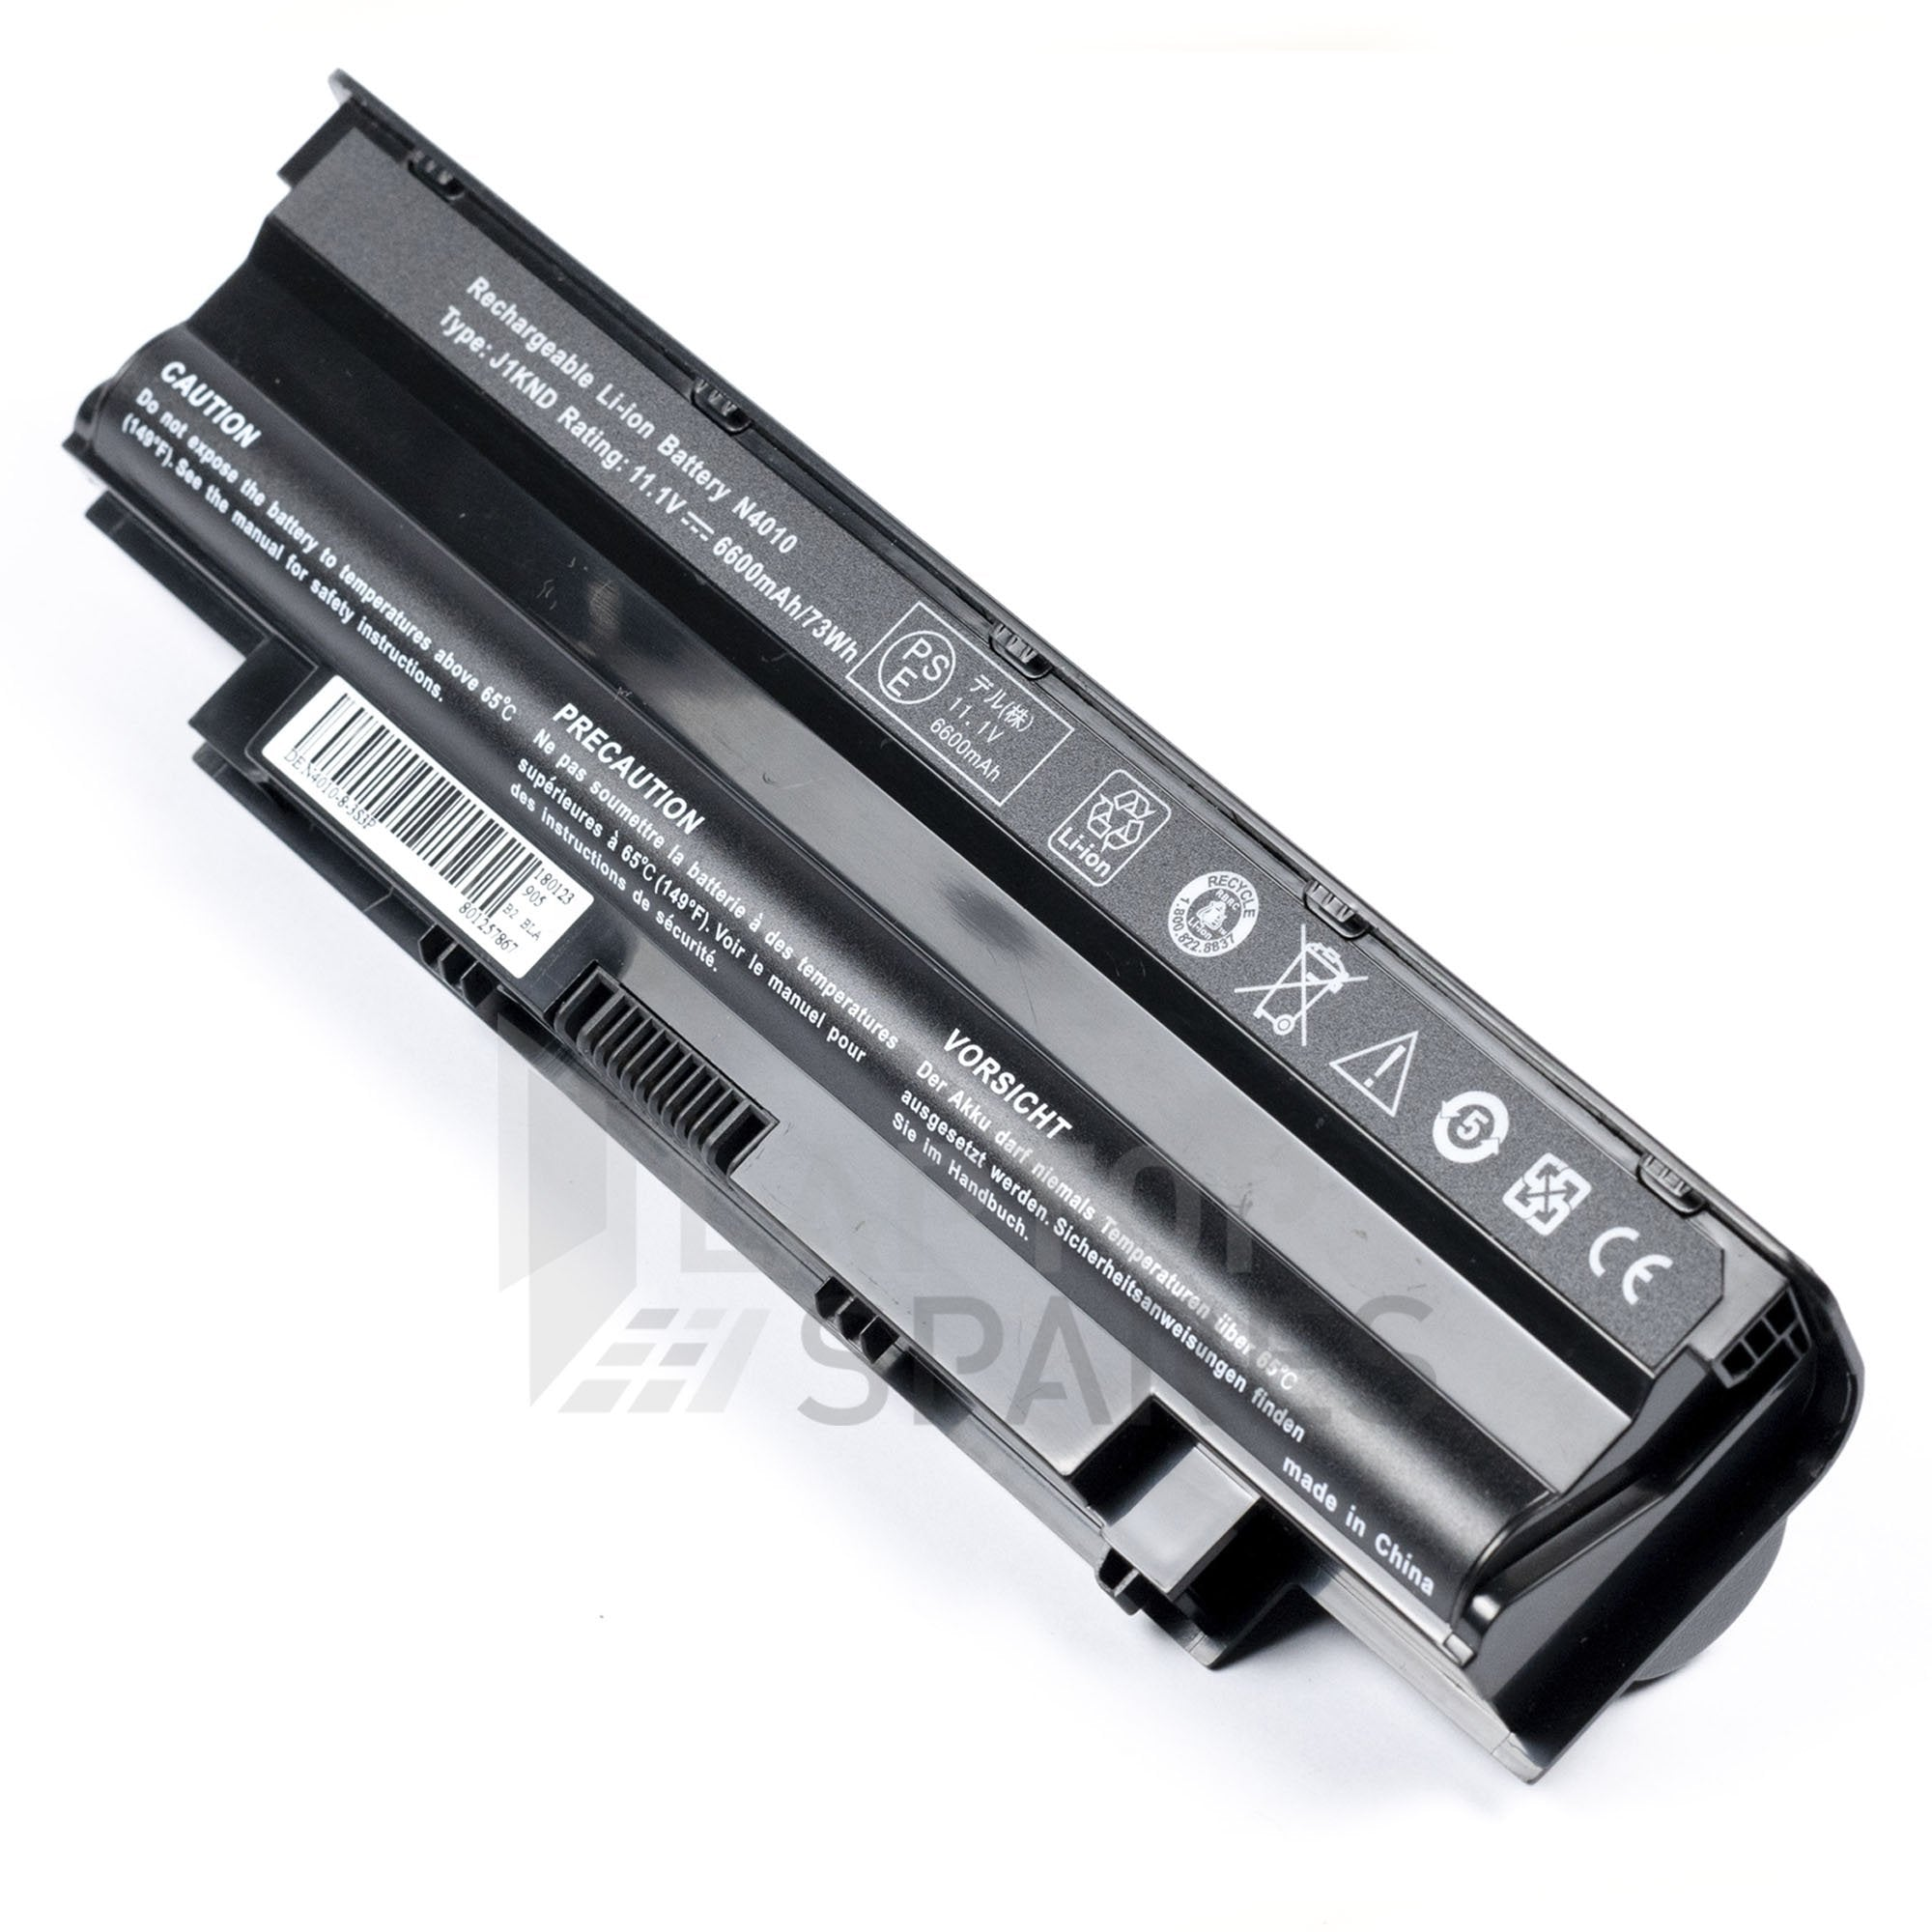 Dell Inspiron 13R 3010-D621 6600mAh 9 Cell Battery